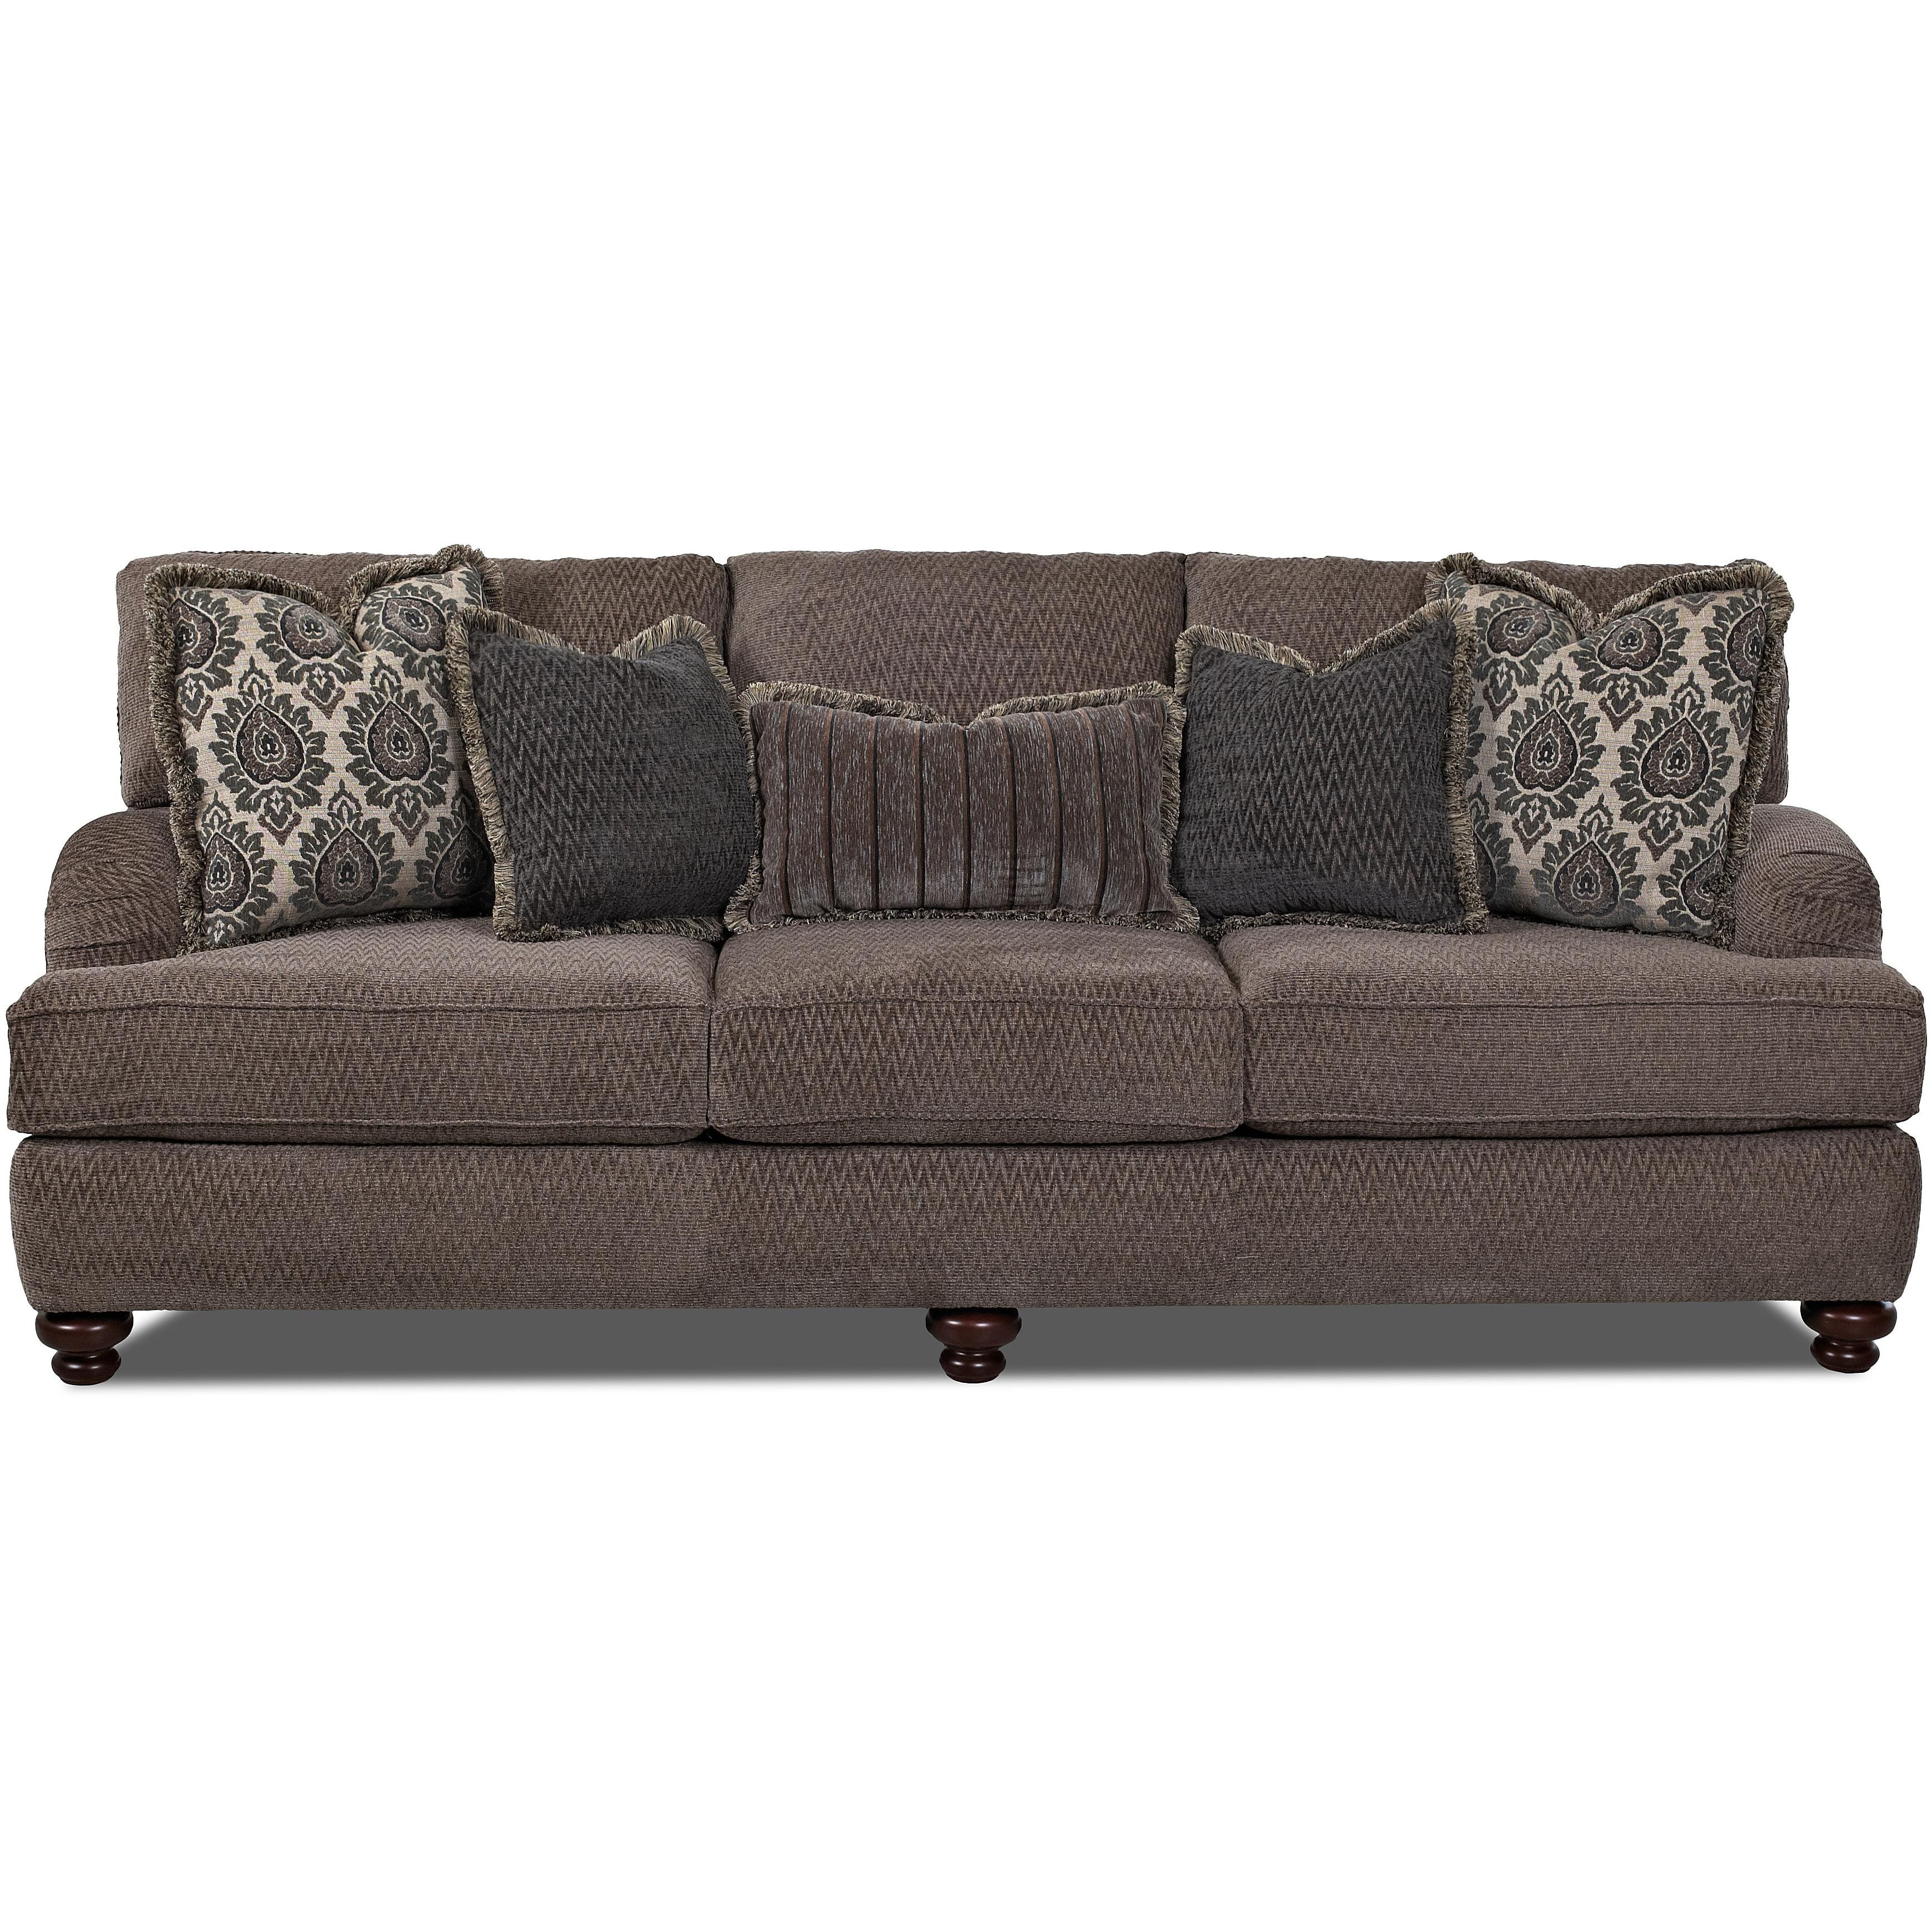 Shop For The Klaussner Declan Traditional Sofa At Johnny Janosik   Your  Delaware, Maryland, Virginia, Delmarva Furniture, Mattress U0026 Outdoor Store